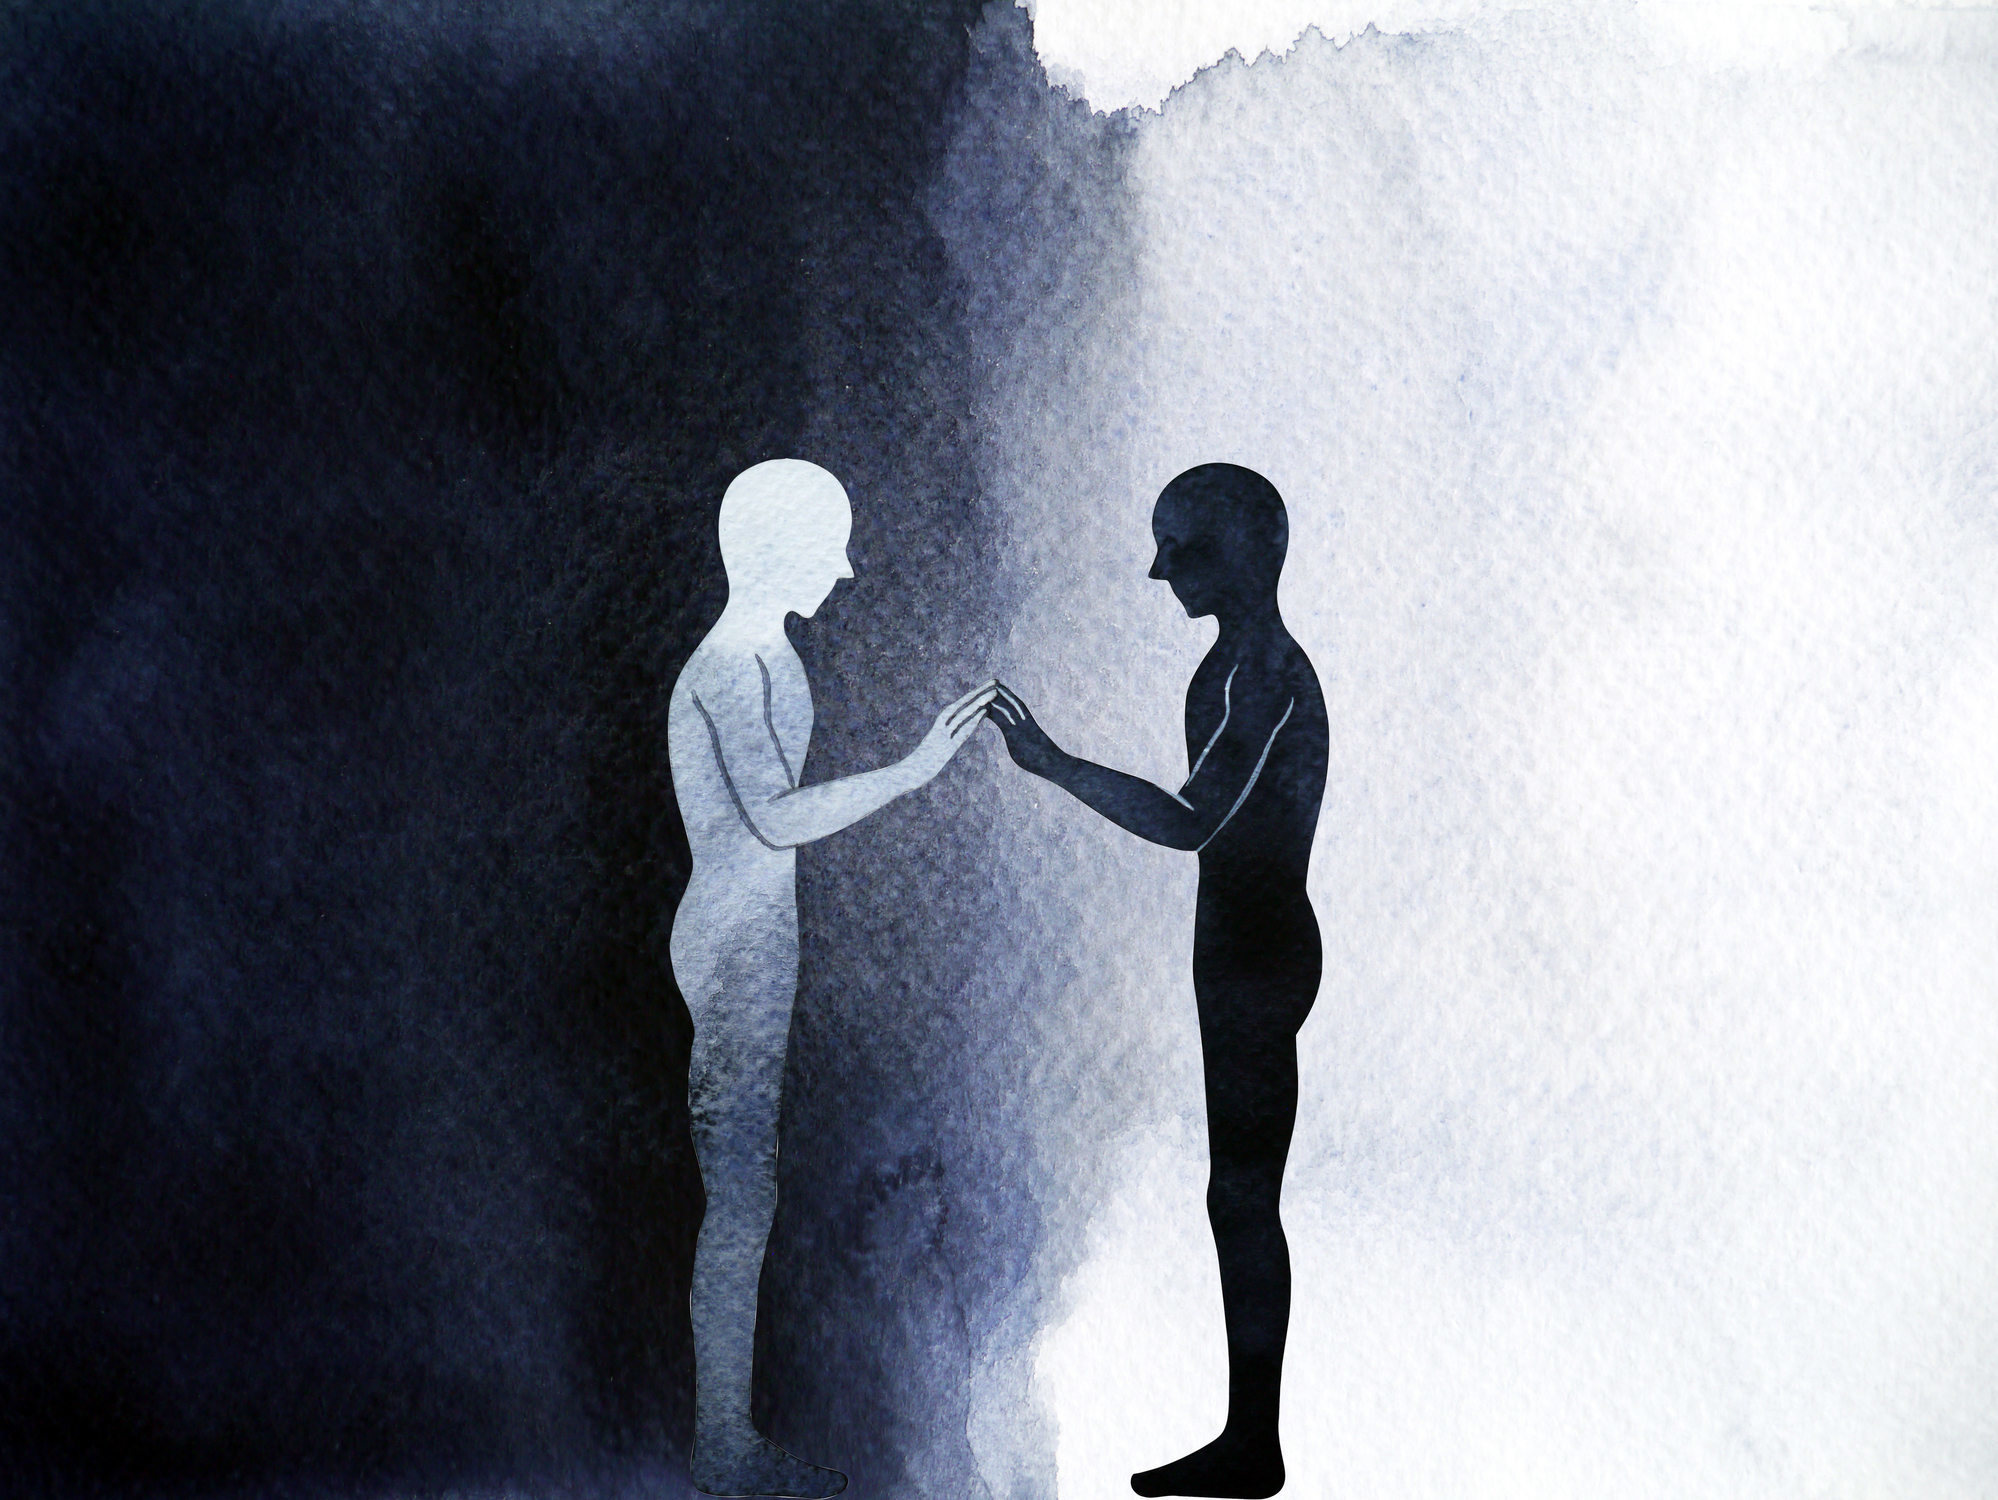 A black and white shadow facing each other and touching hands together